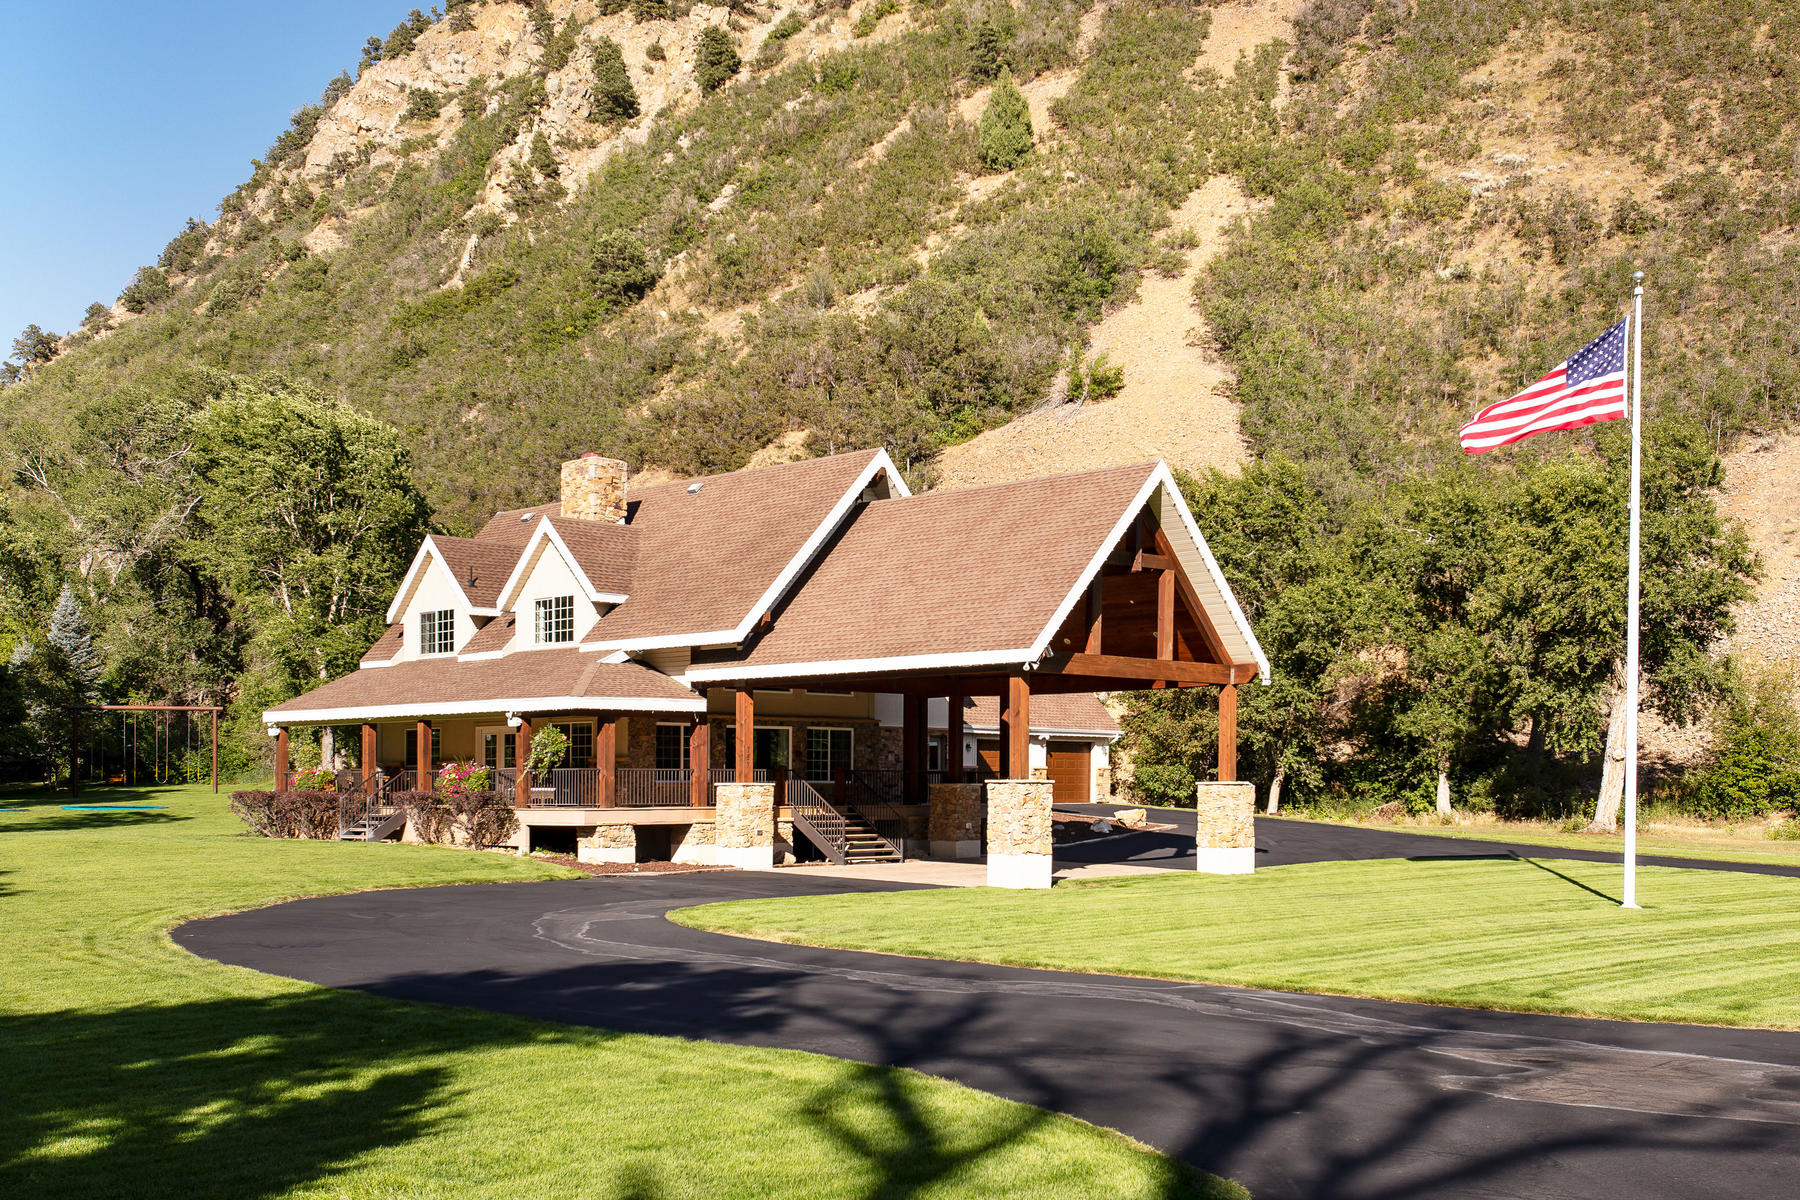 Single Family Homes for Active at Stunning Mountain Contemporary Home in Hobble Creek Canyon 757 S Hobble Creek Canyon Springville, Utah 84663 United States